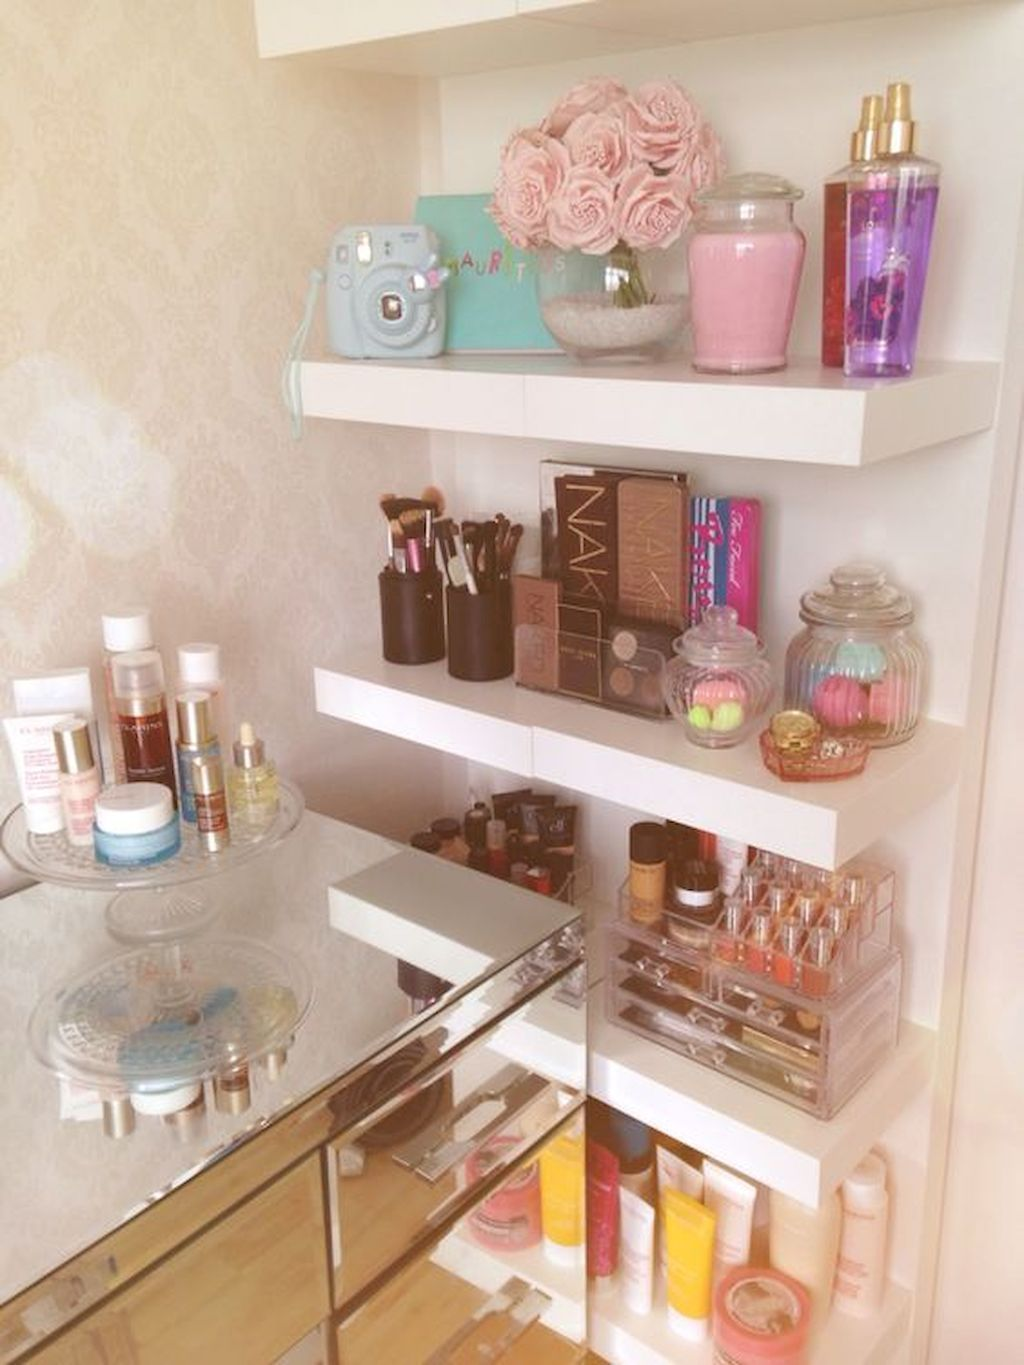 50 Tips and Tricks Bathroom Storage Shelves Organization